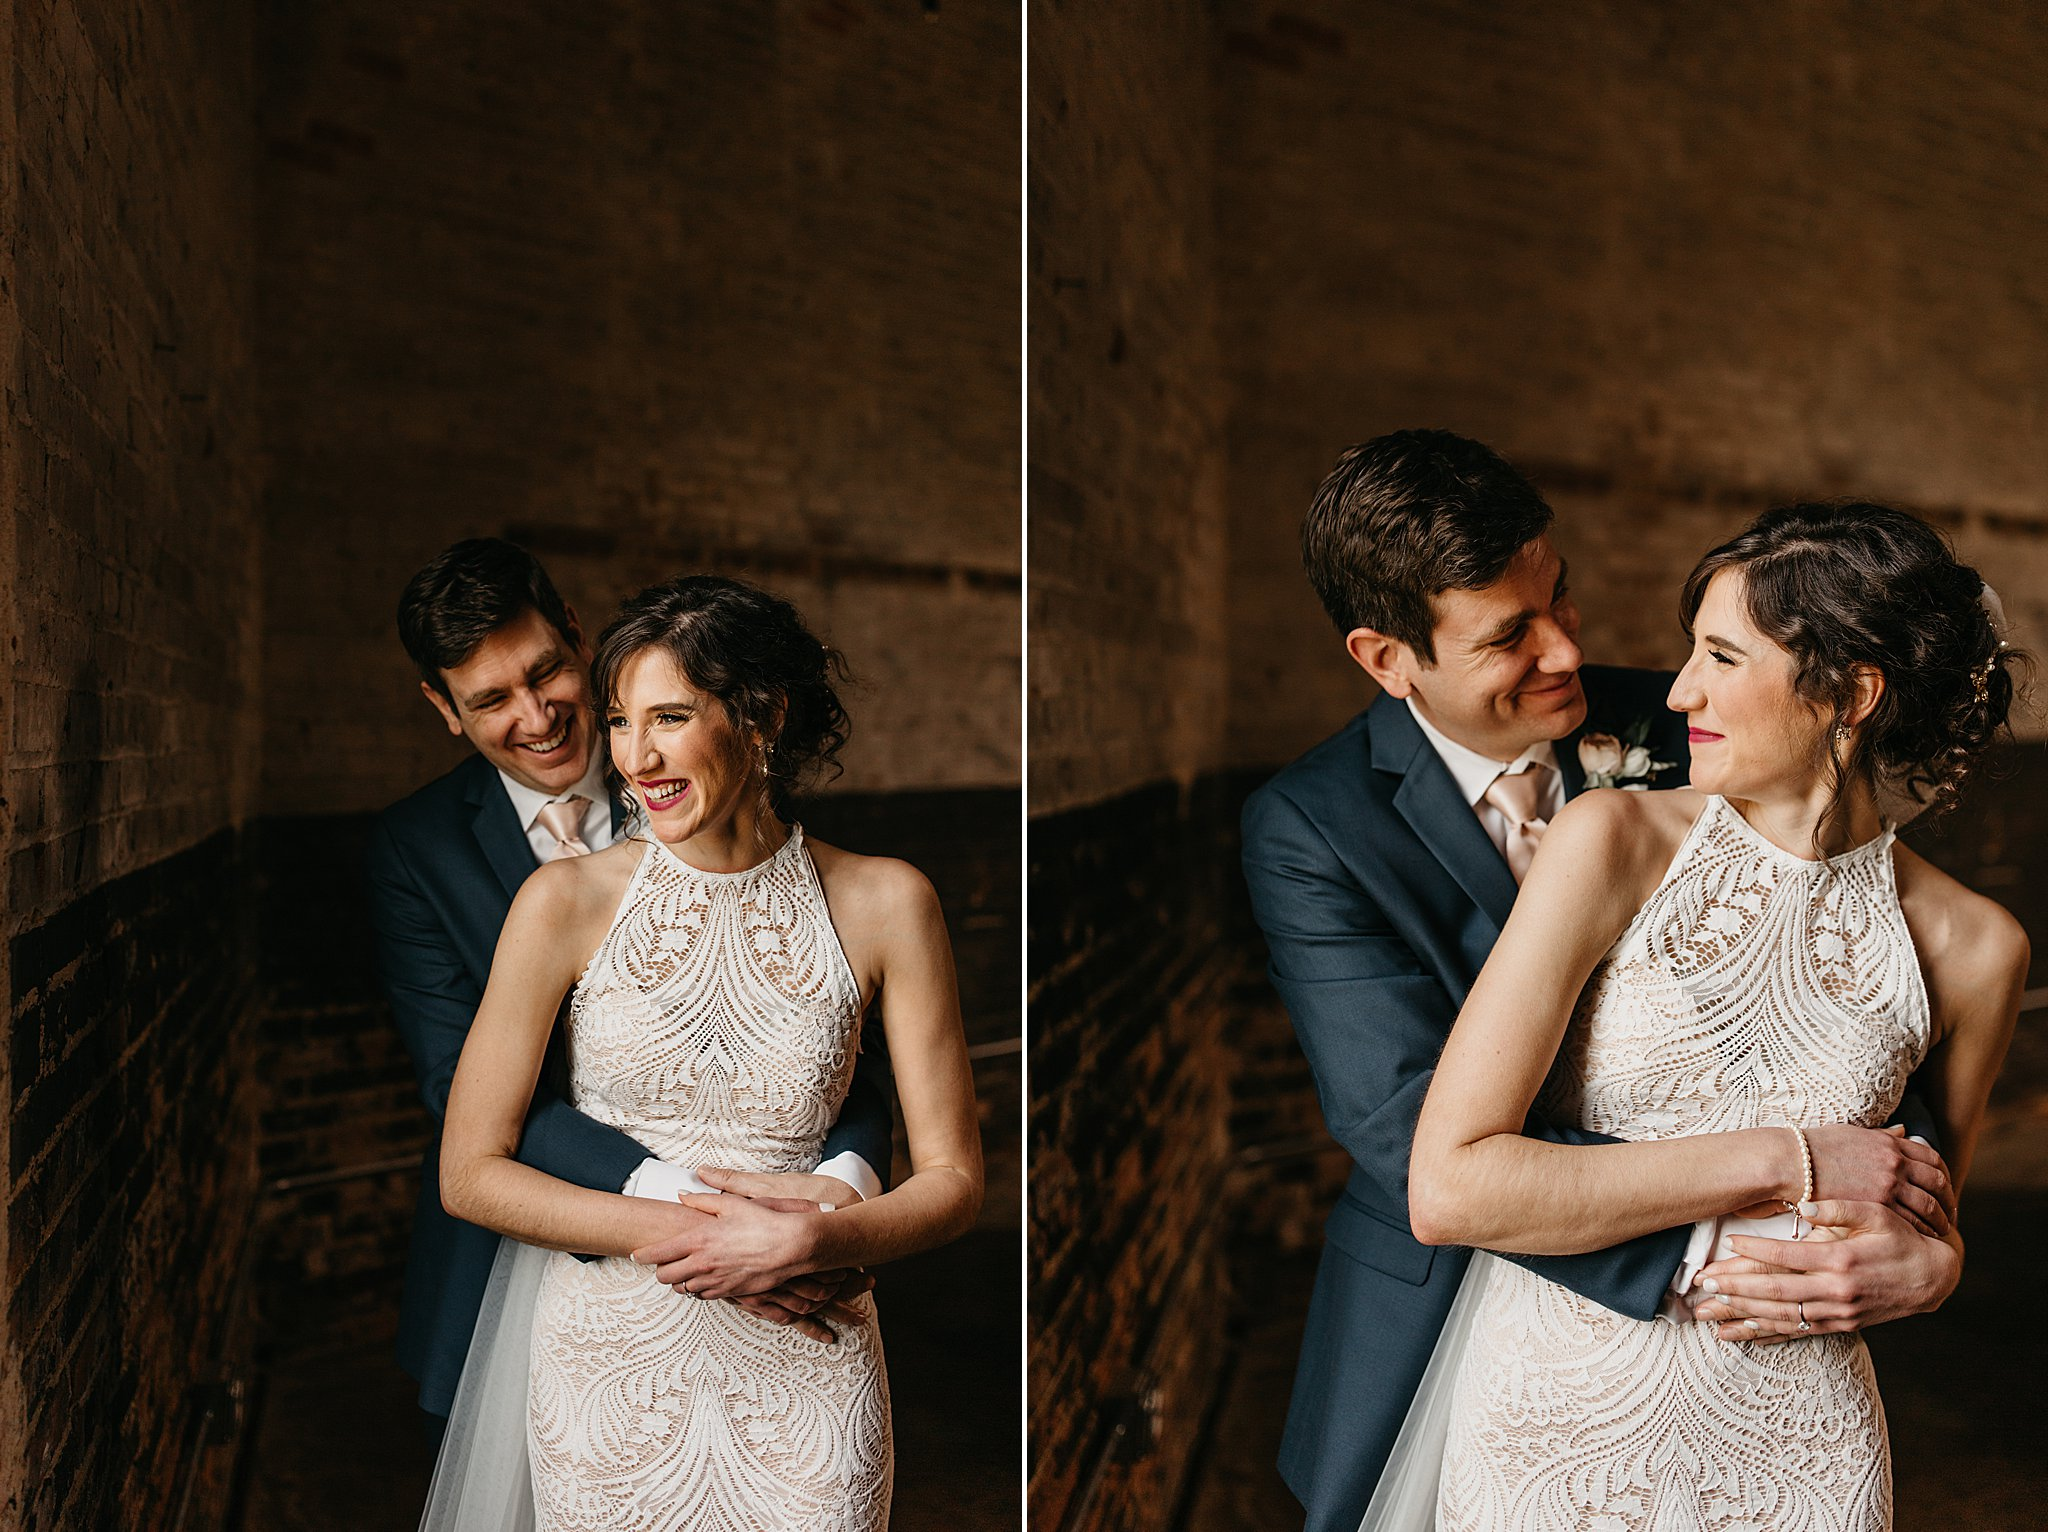 Wilderlove Co_Wedding Photographer_Industrial Wedding_Jewish Wedding_Dallas Texas Wedding_Brake & Clutch Warehouse_North Texas Photographer_0024.jpg